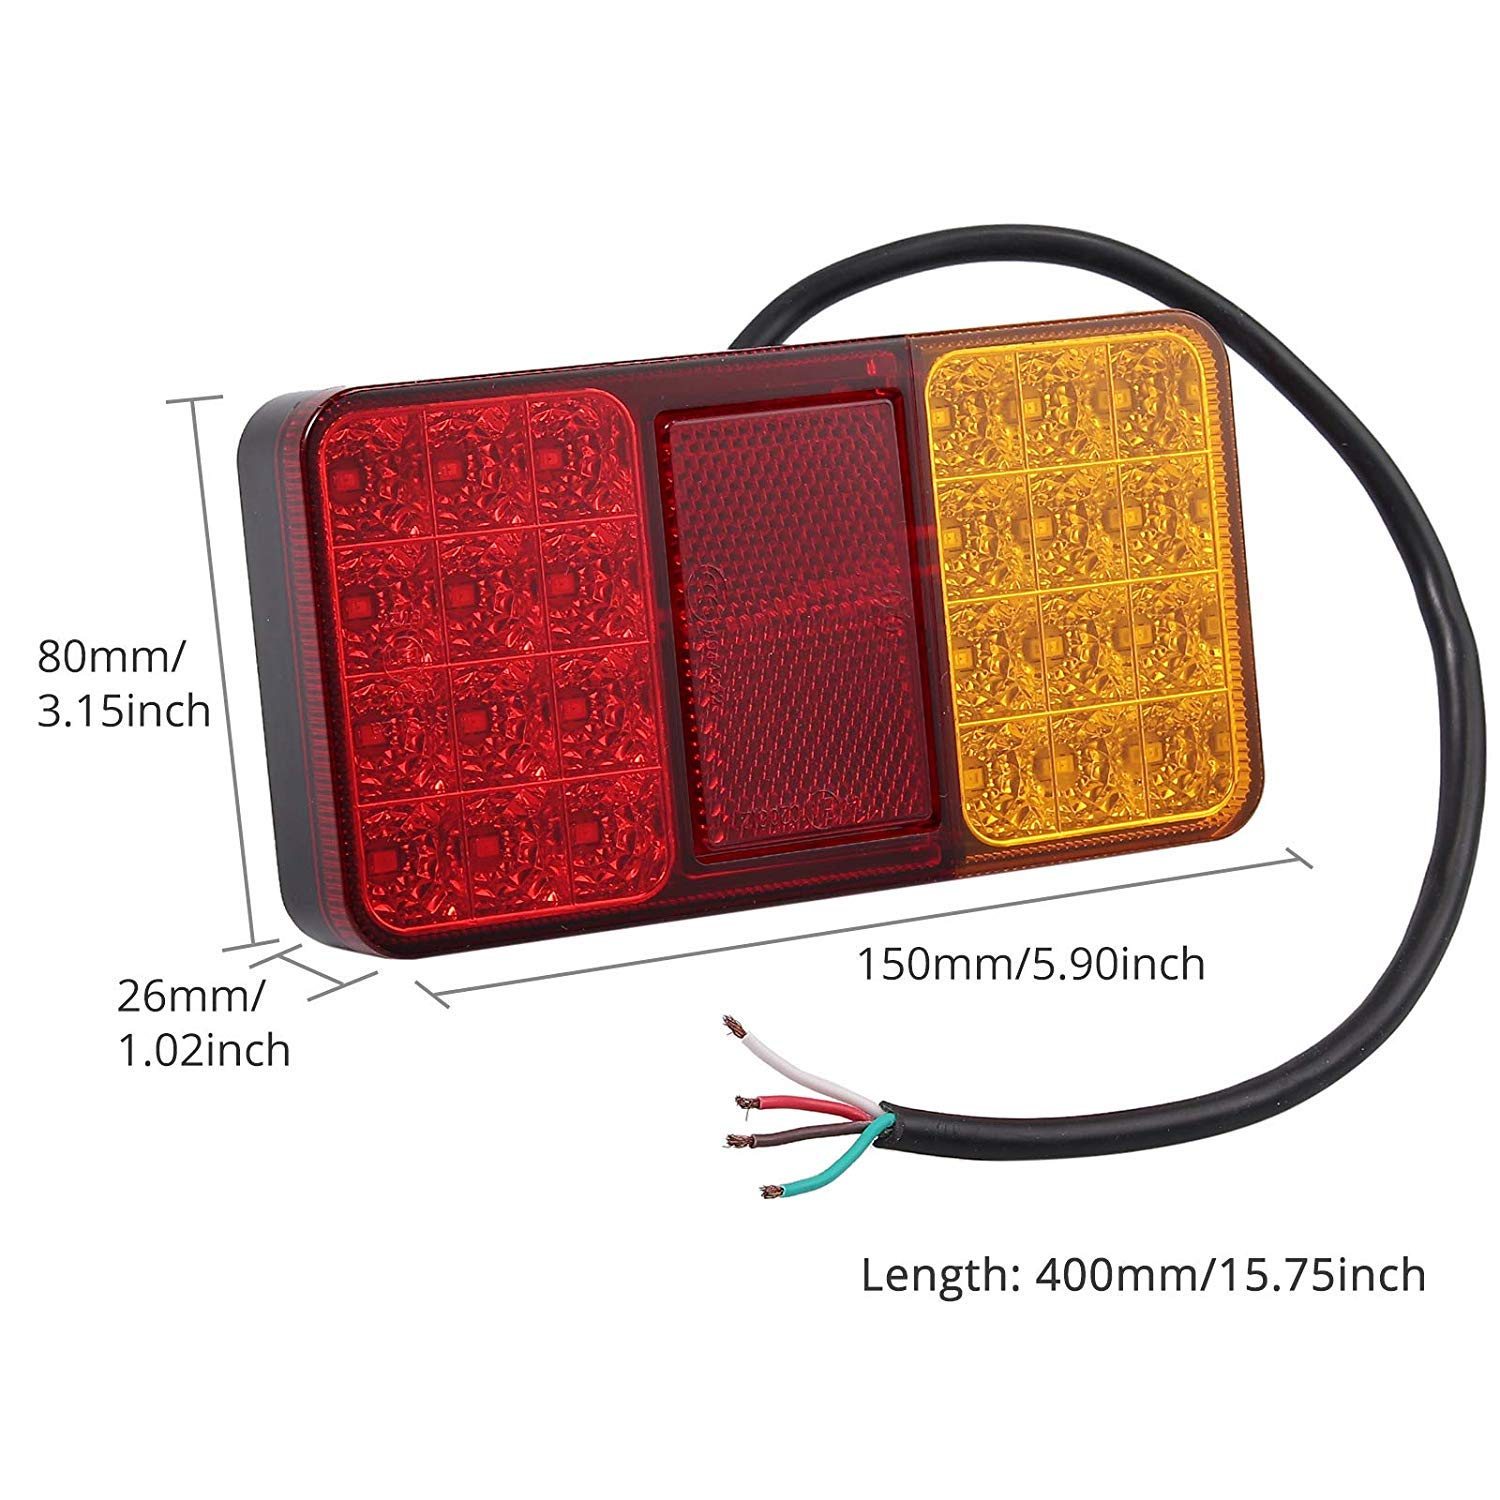 24 LEDS Justech 2 x Rear Brake Lights Tail lights 12V Universal for Trailer Camper Van Truck Lorry Tractor